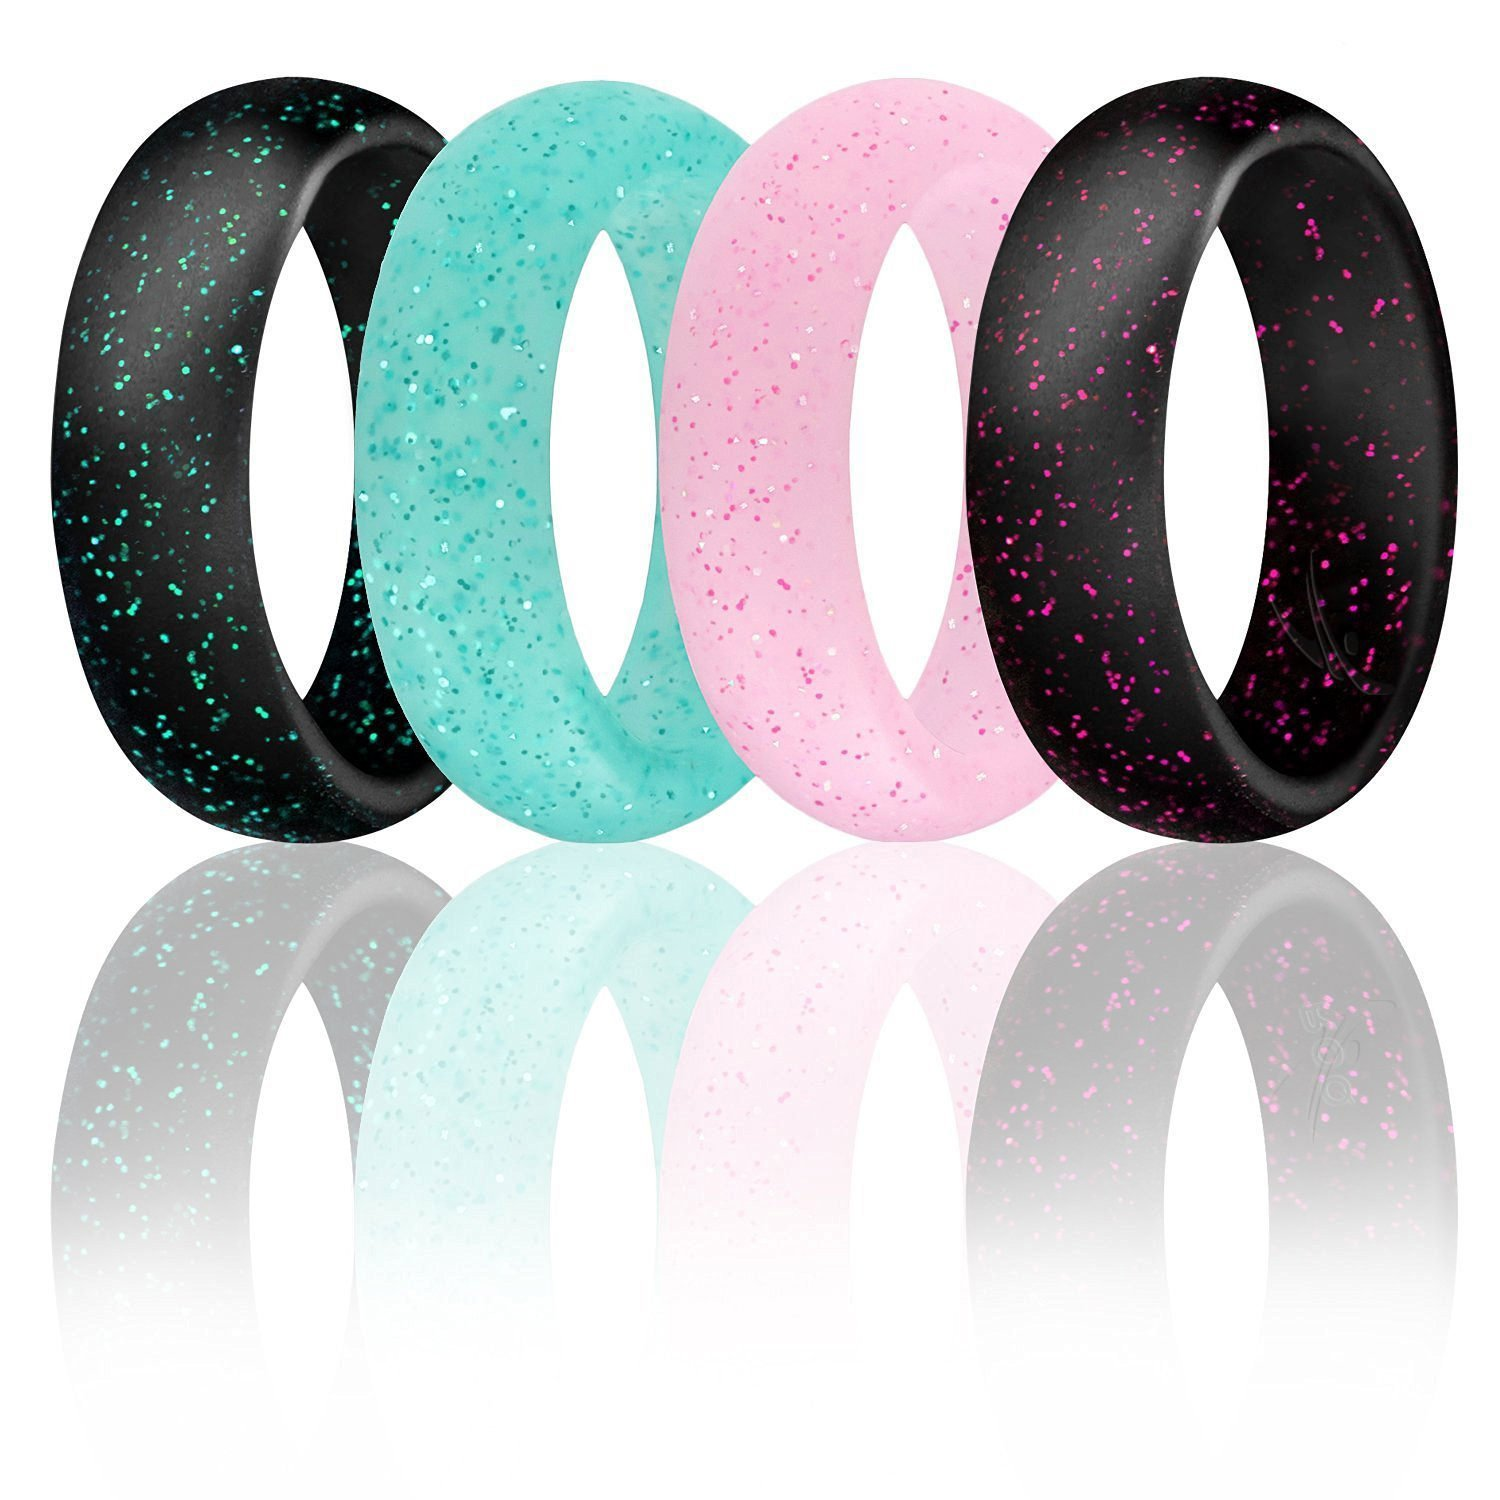 ROQ Silicone Wedding Ring for Women Affordable Silicone Rubber Wedding Bands 7 Packs 4 Pack & Singles - Glitters & Metallic - Rose Gold Silver Pink Black Blue